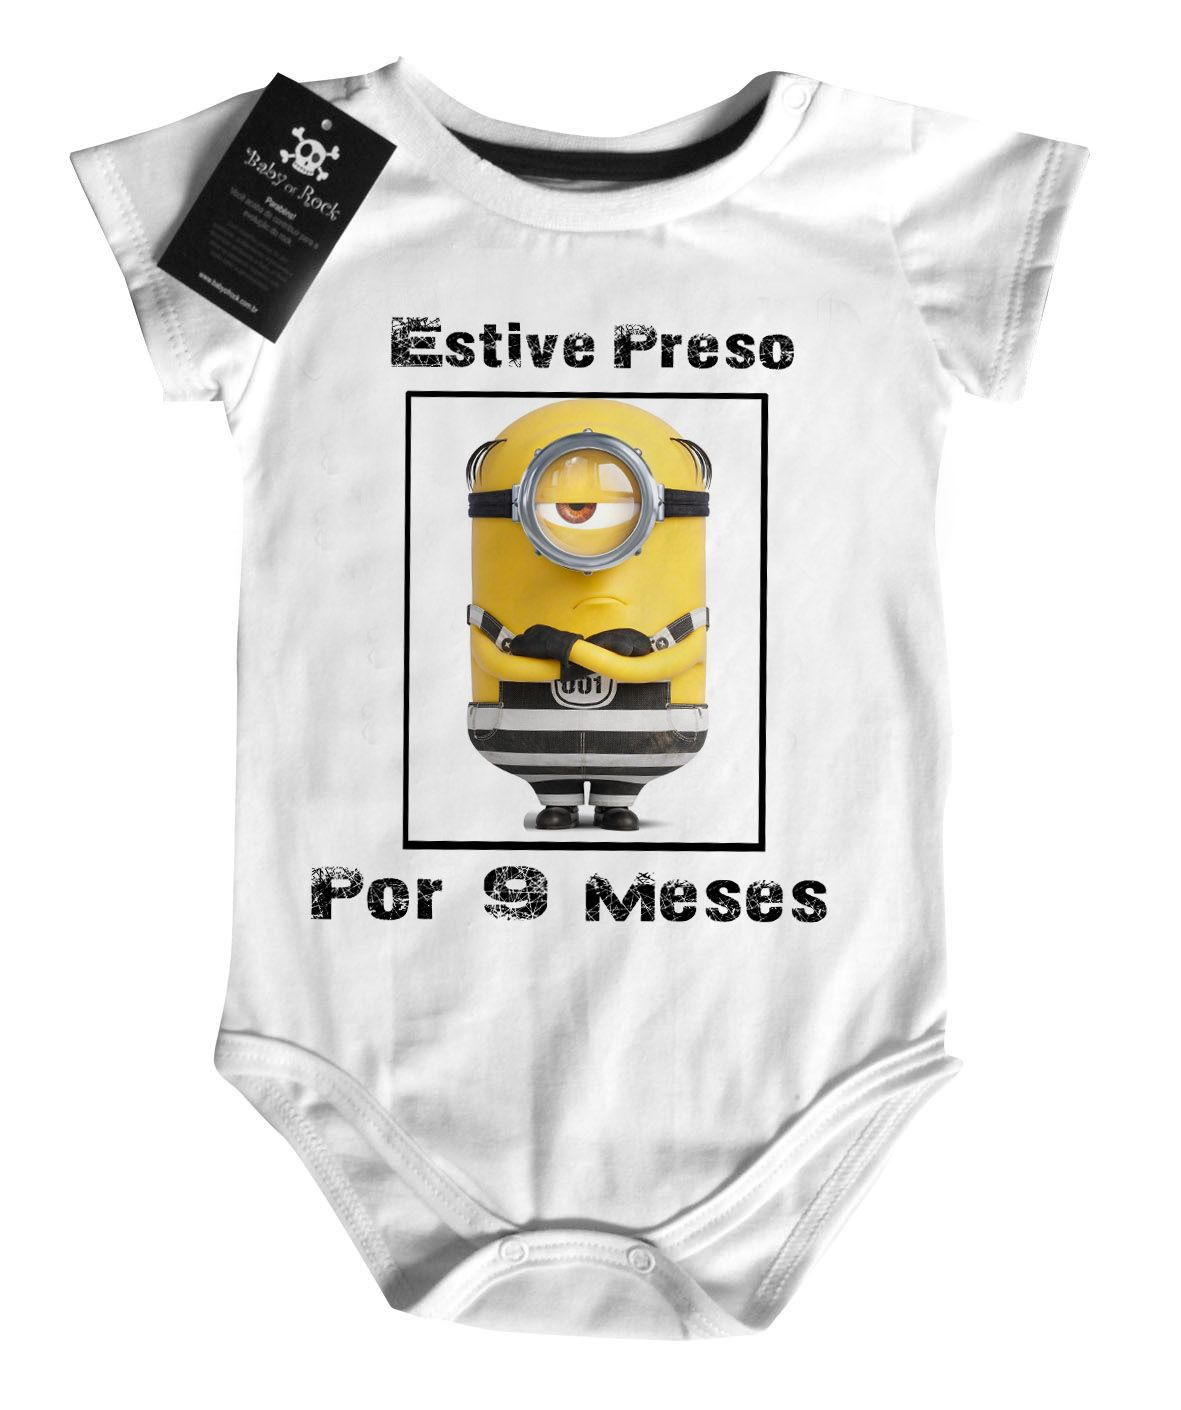 Body Bebê Estive preso 9 Meses- White  - Baby Monster S/A